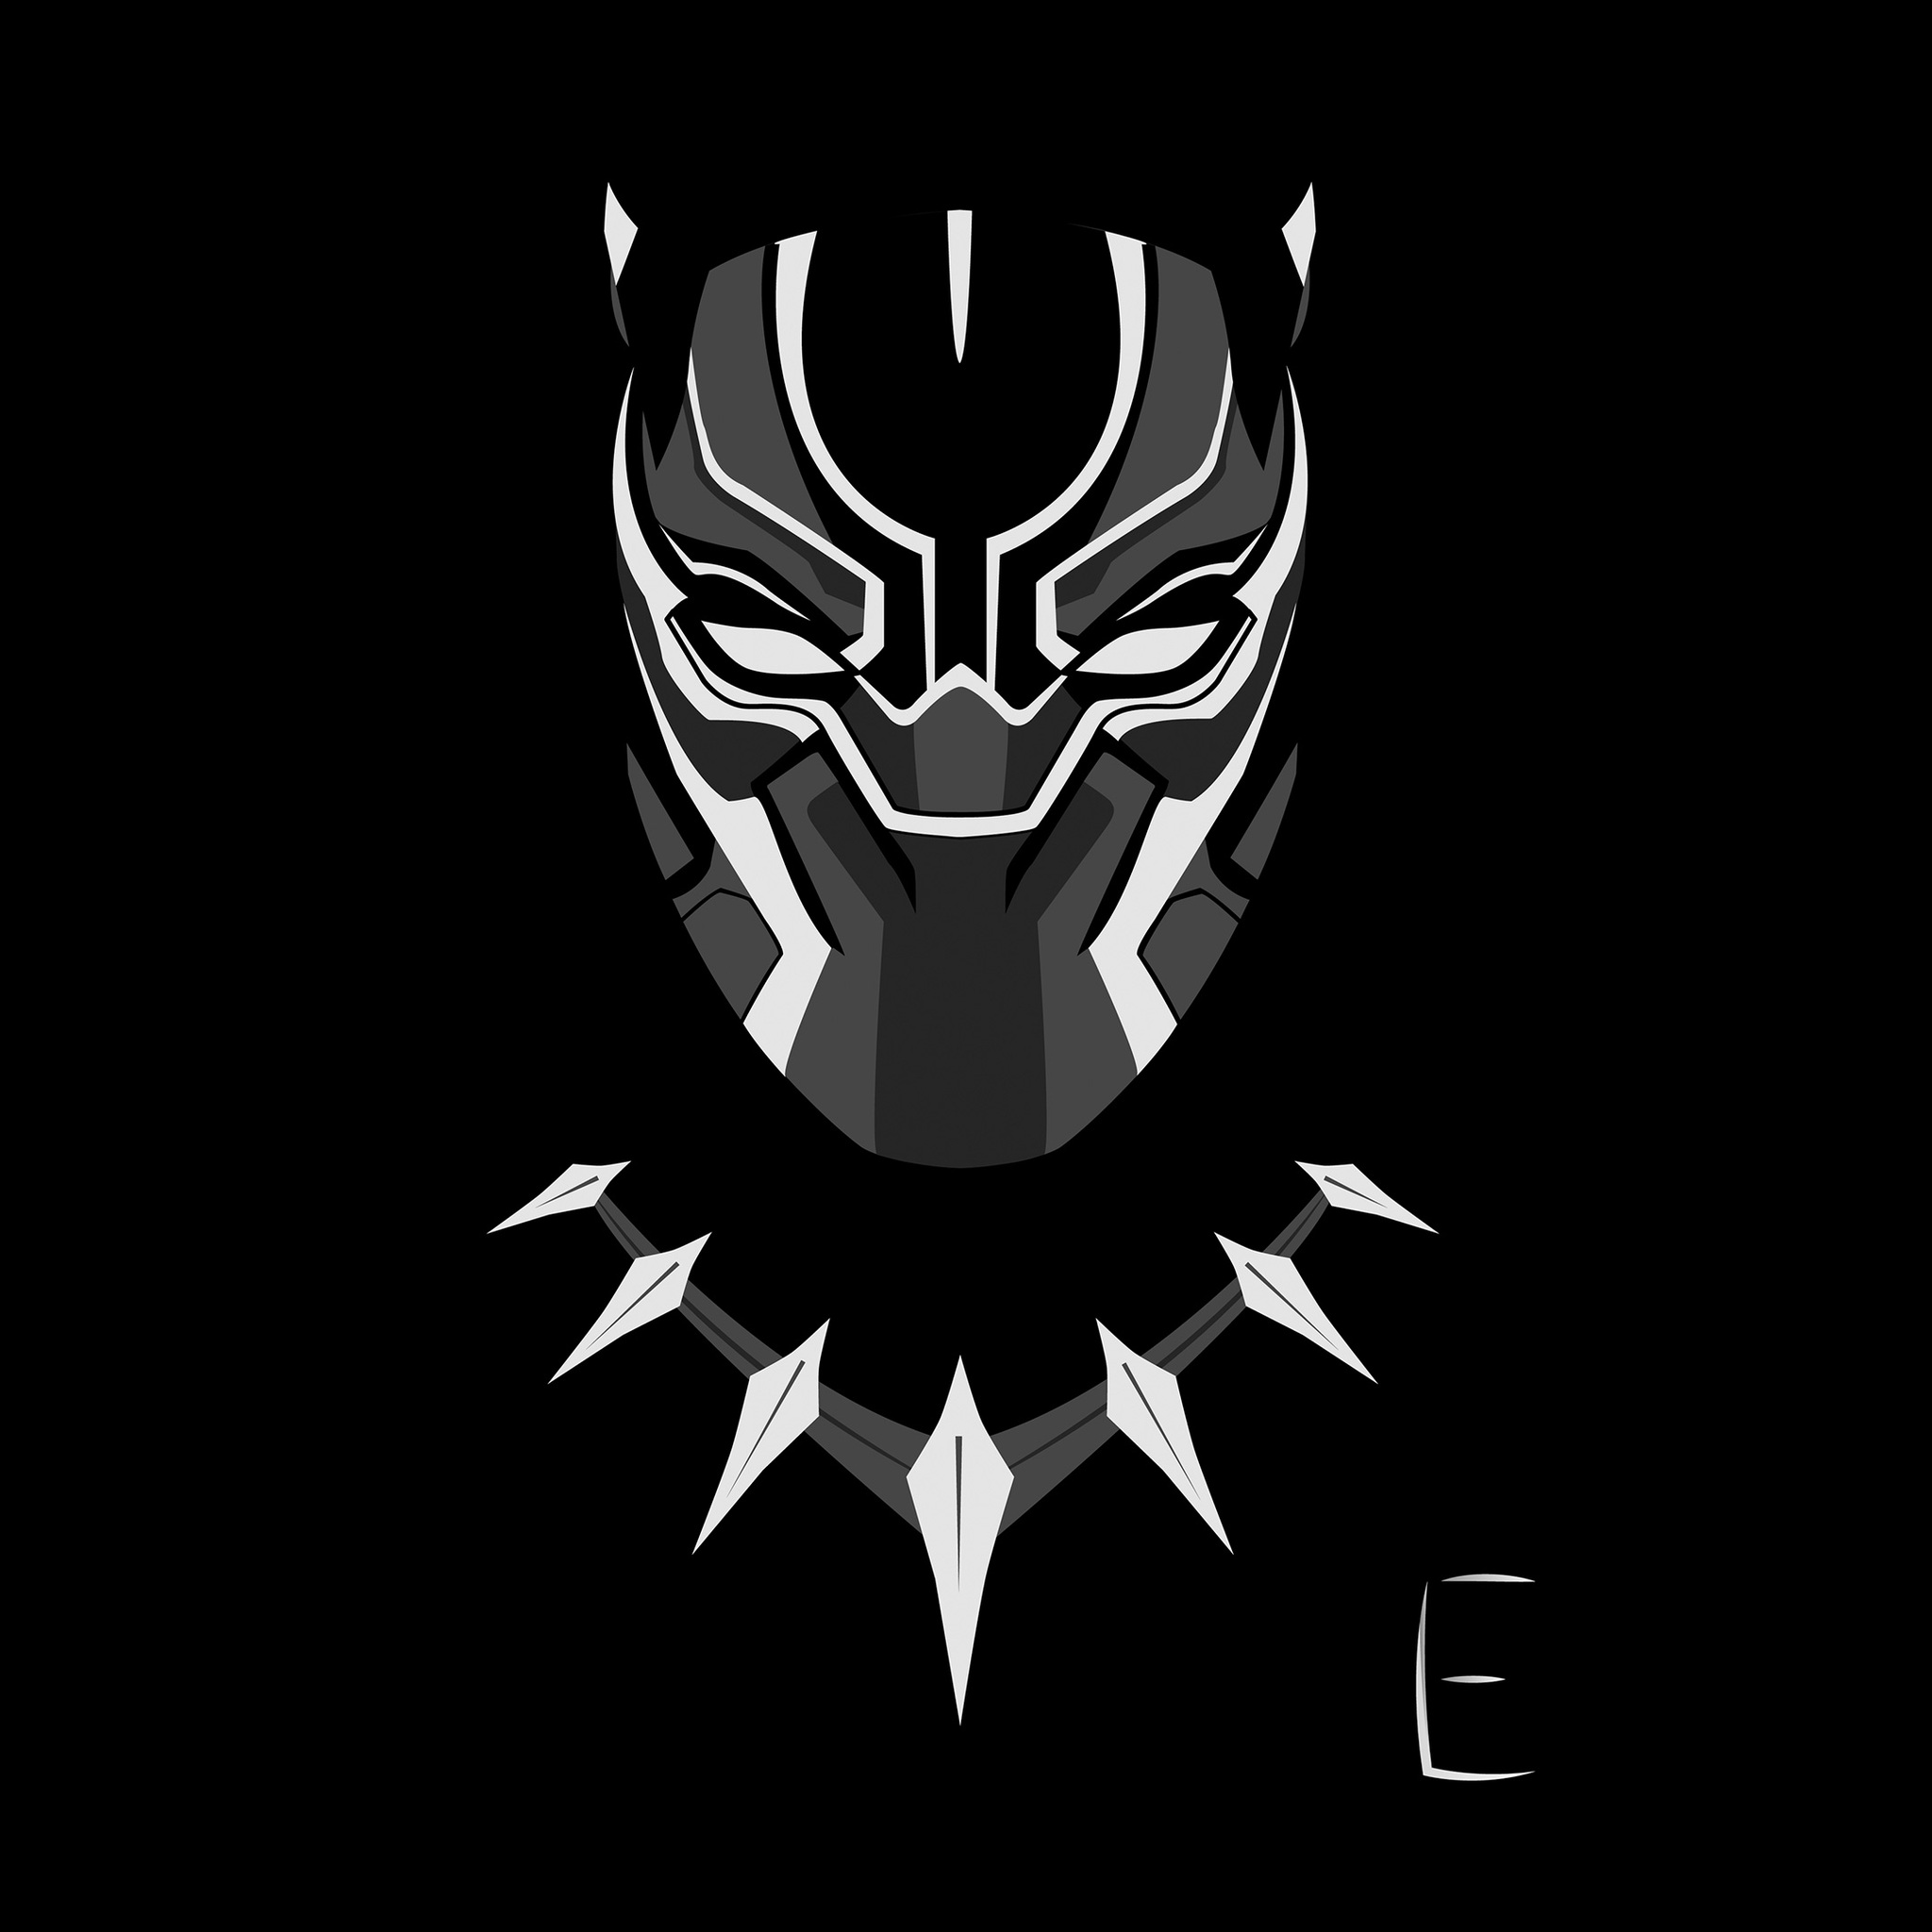 2048x2048 Black Panther Minimalism 4k Ipad Air HD 4k Wallpapers, Images, Backgrounds, Photos and Pictures